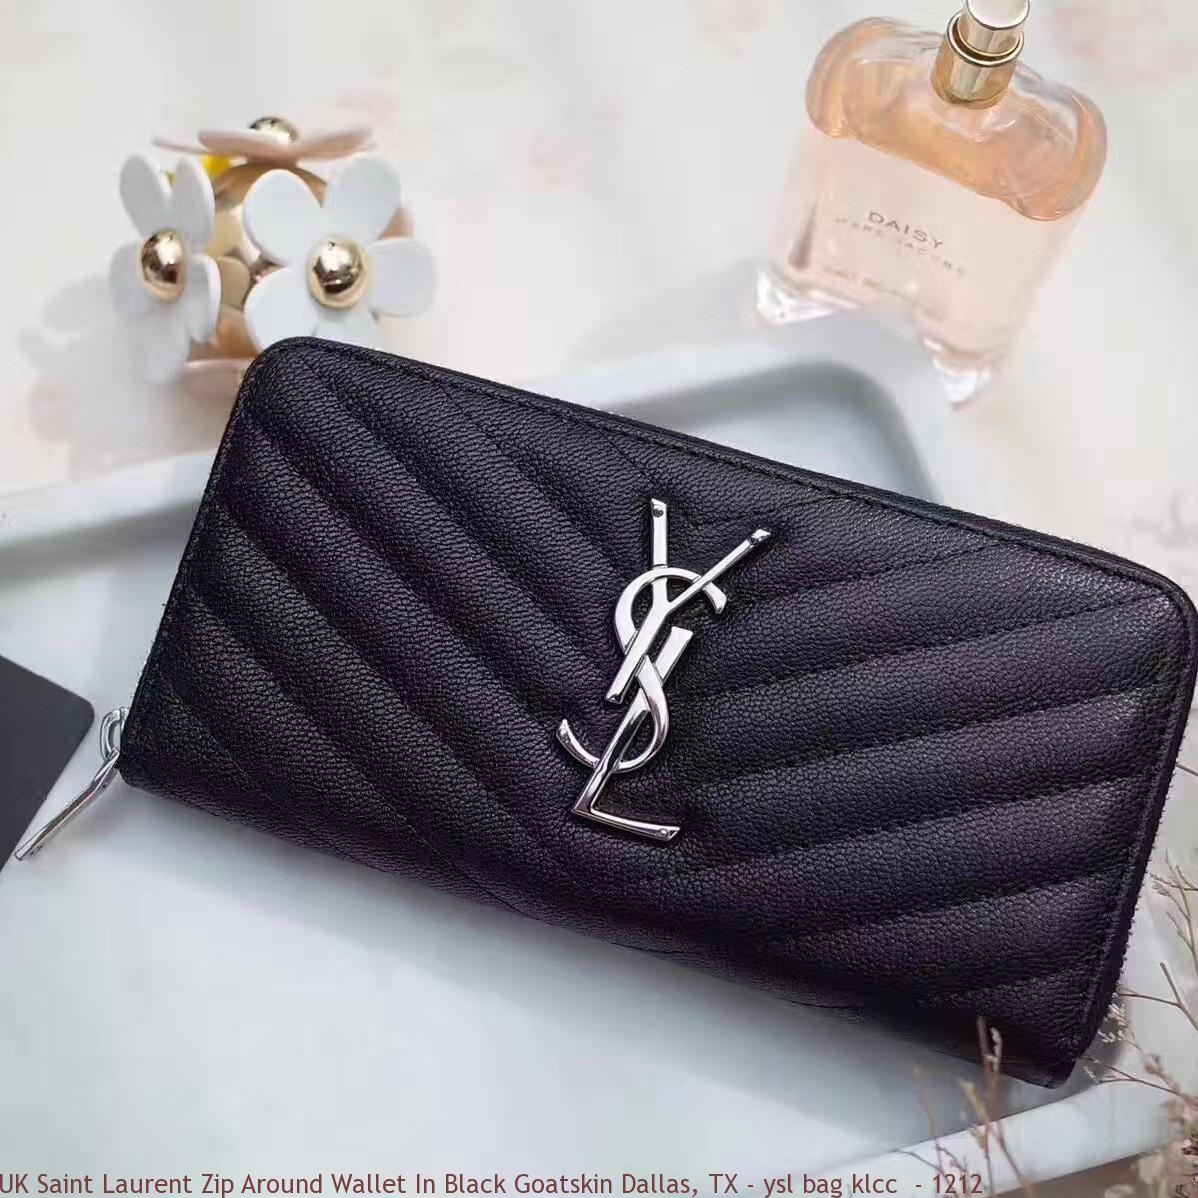 Uk Saint Laurent Zip Around Wallet In Black Goatskin